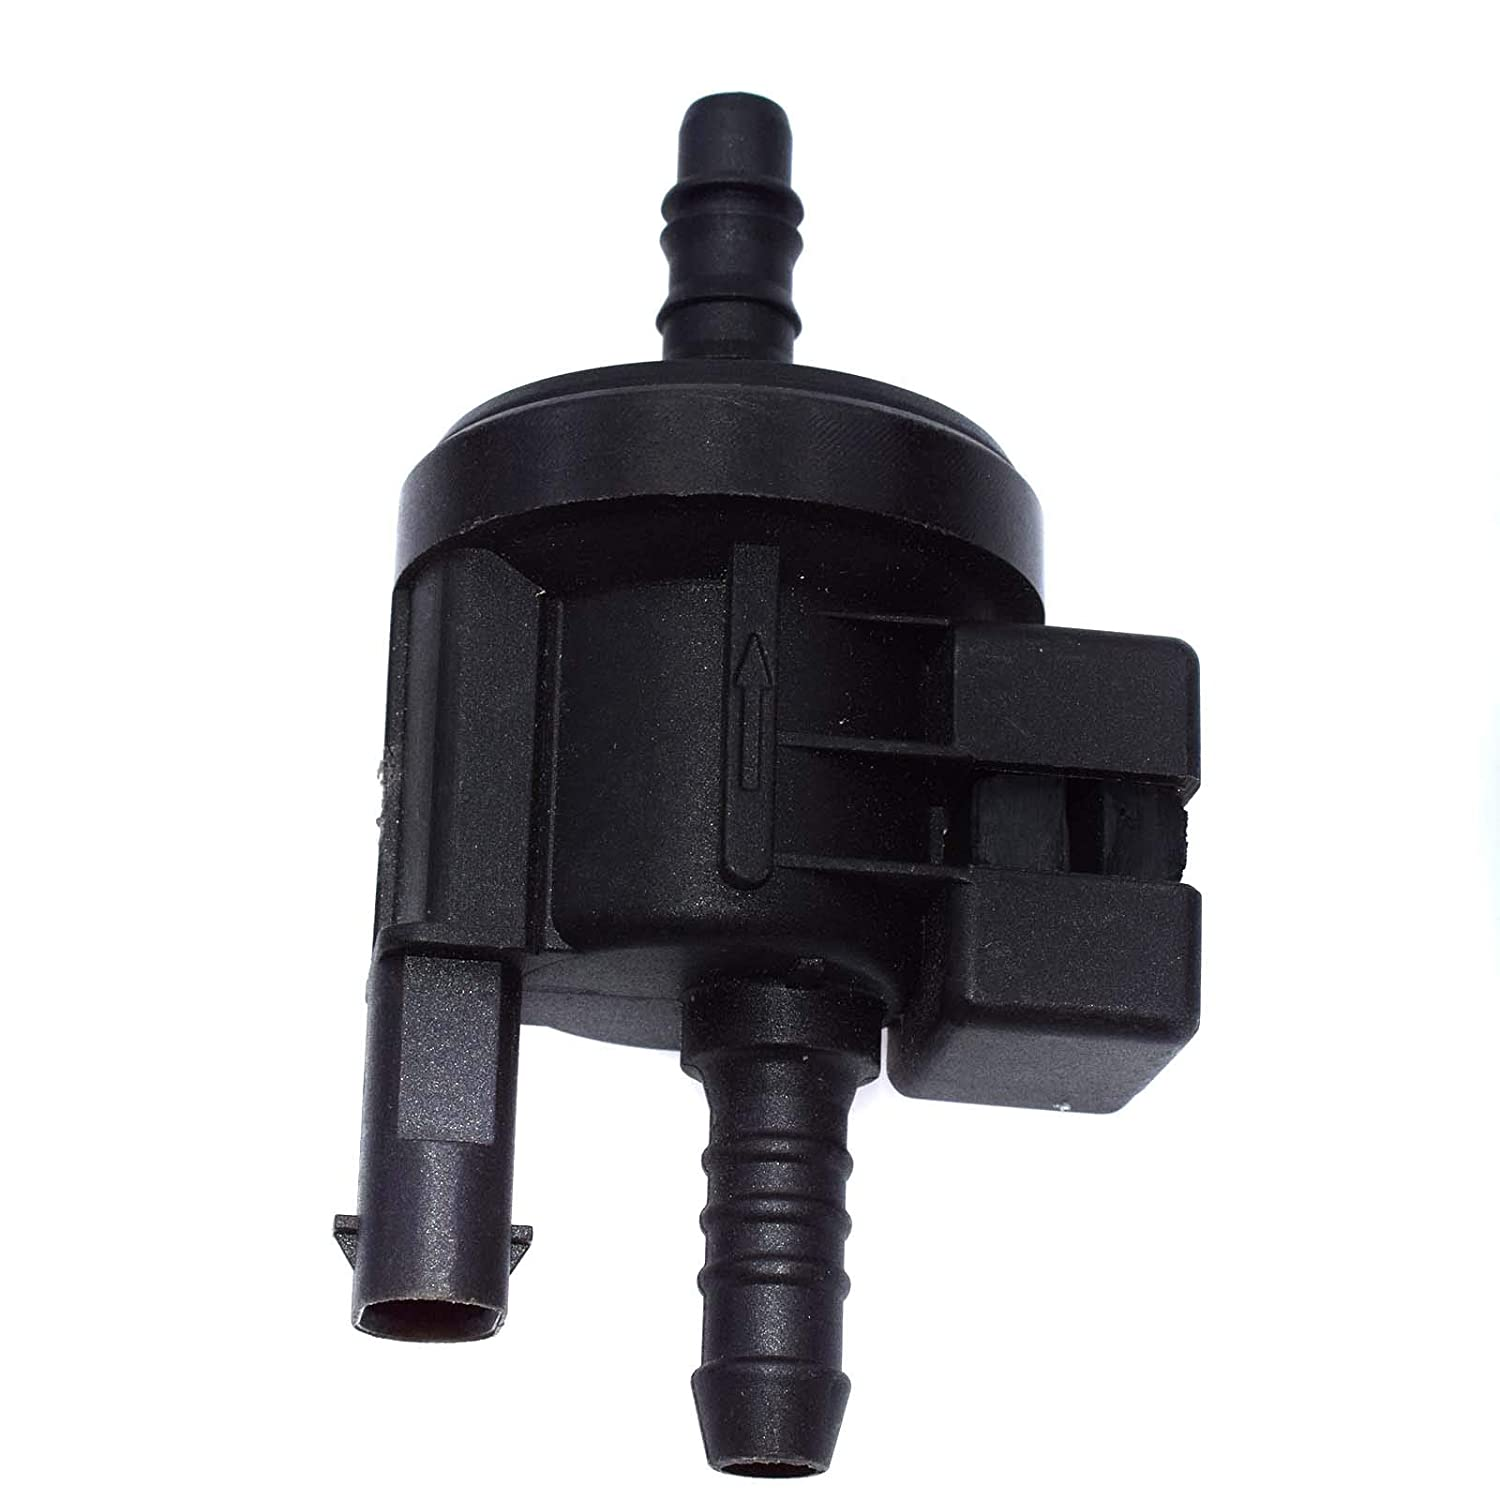 For VW Jetta 2.0T Audi A3 Q5 R8 Intake System Valve Purge Solenoid 06H906517